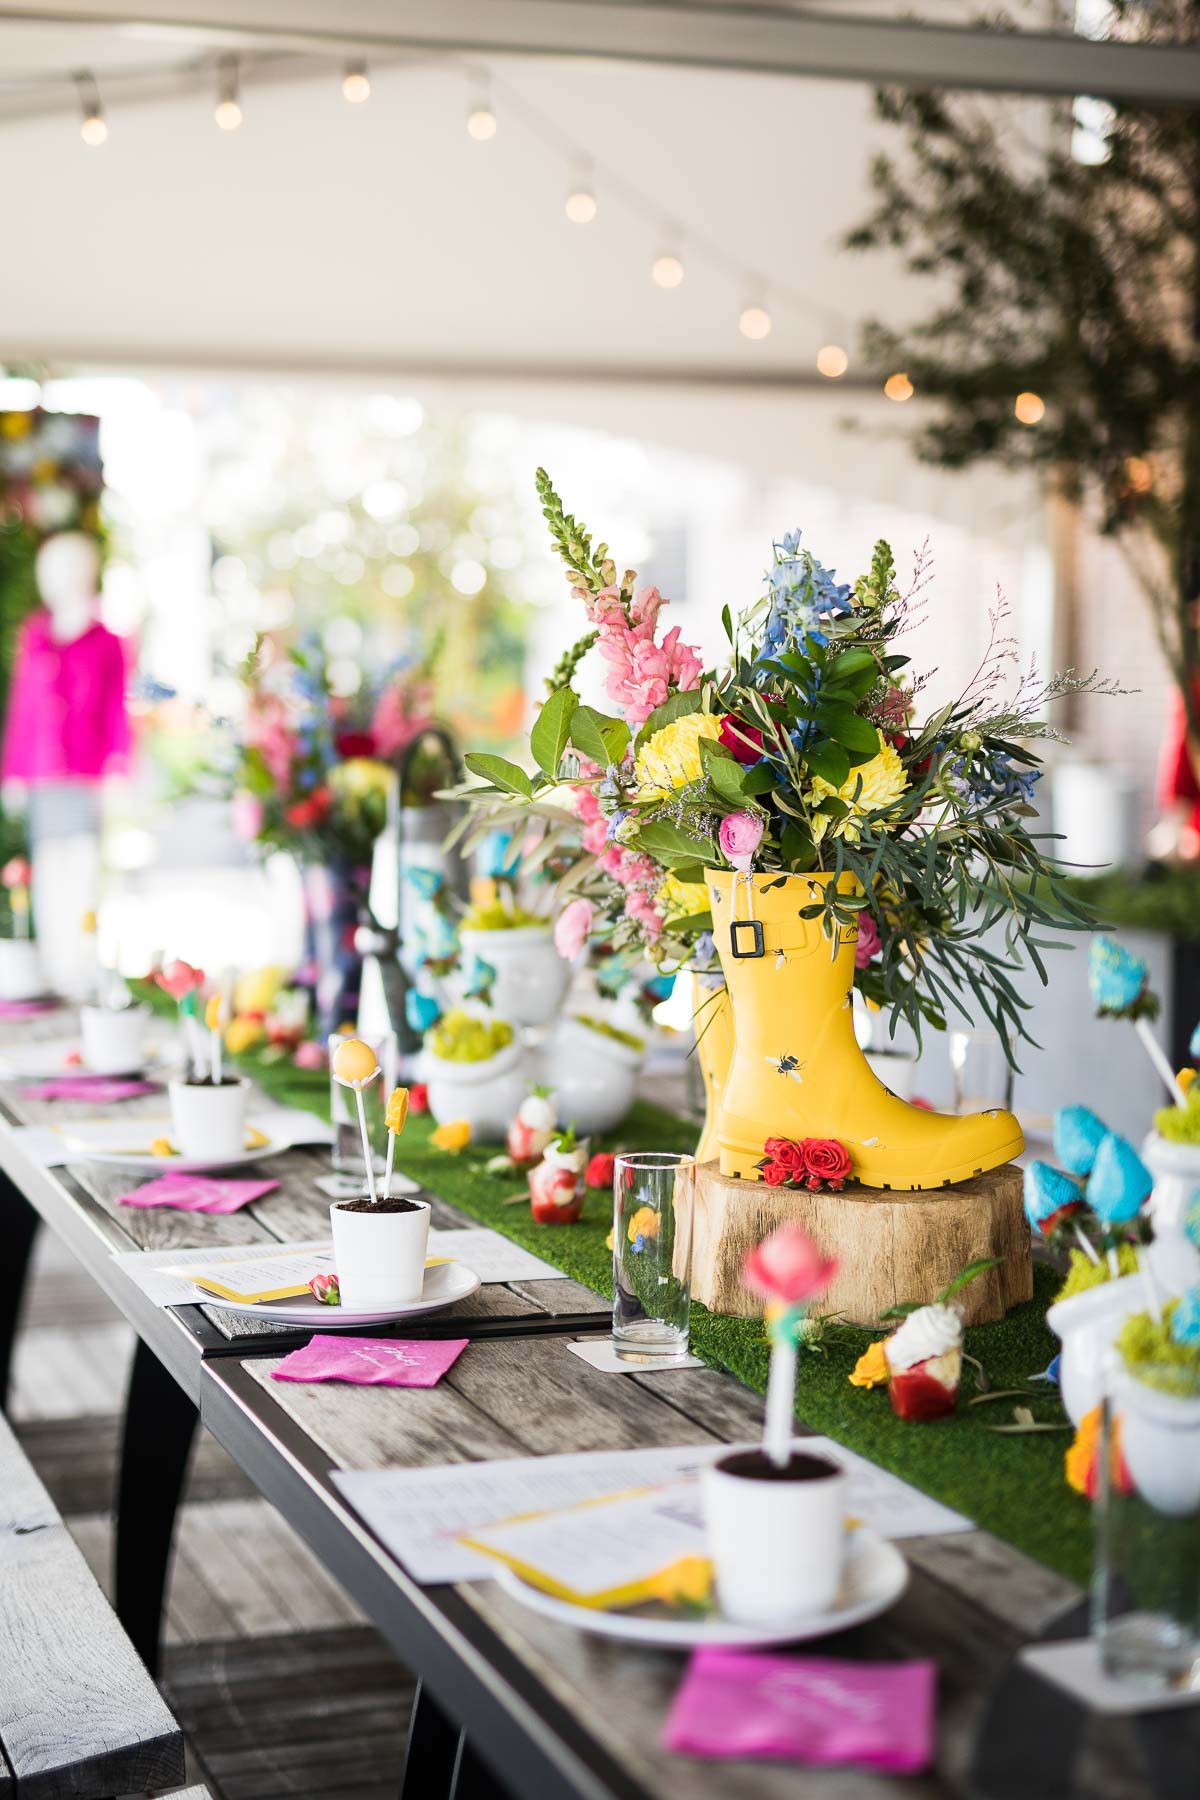 Spring Tablescape Idea With Colorful Rainboots and Flowers